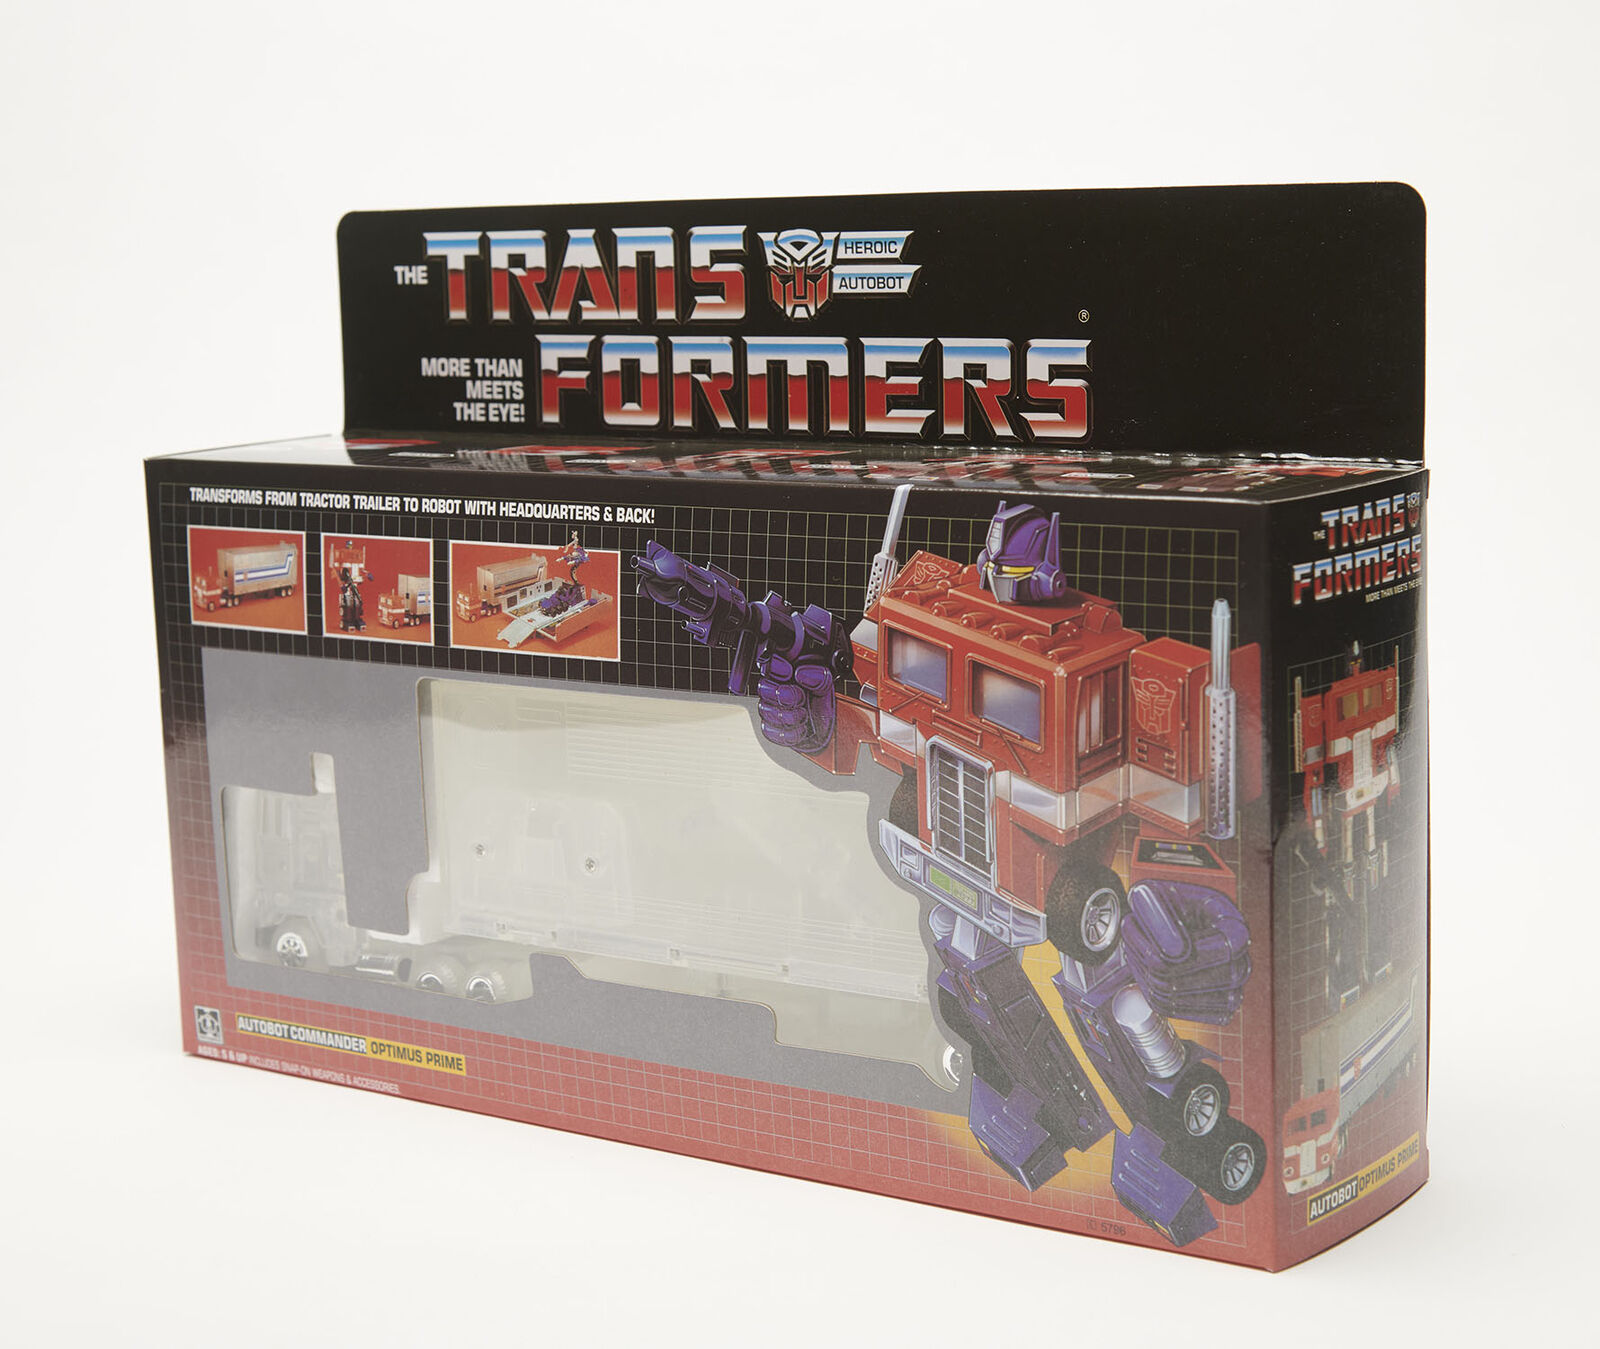 Transformers Optimes Prime G1 Reissue Transparent Version Gift Toy Boy